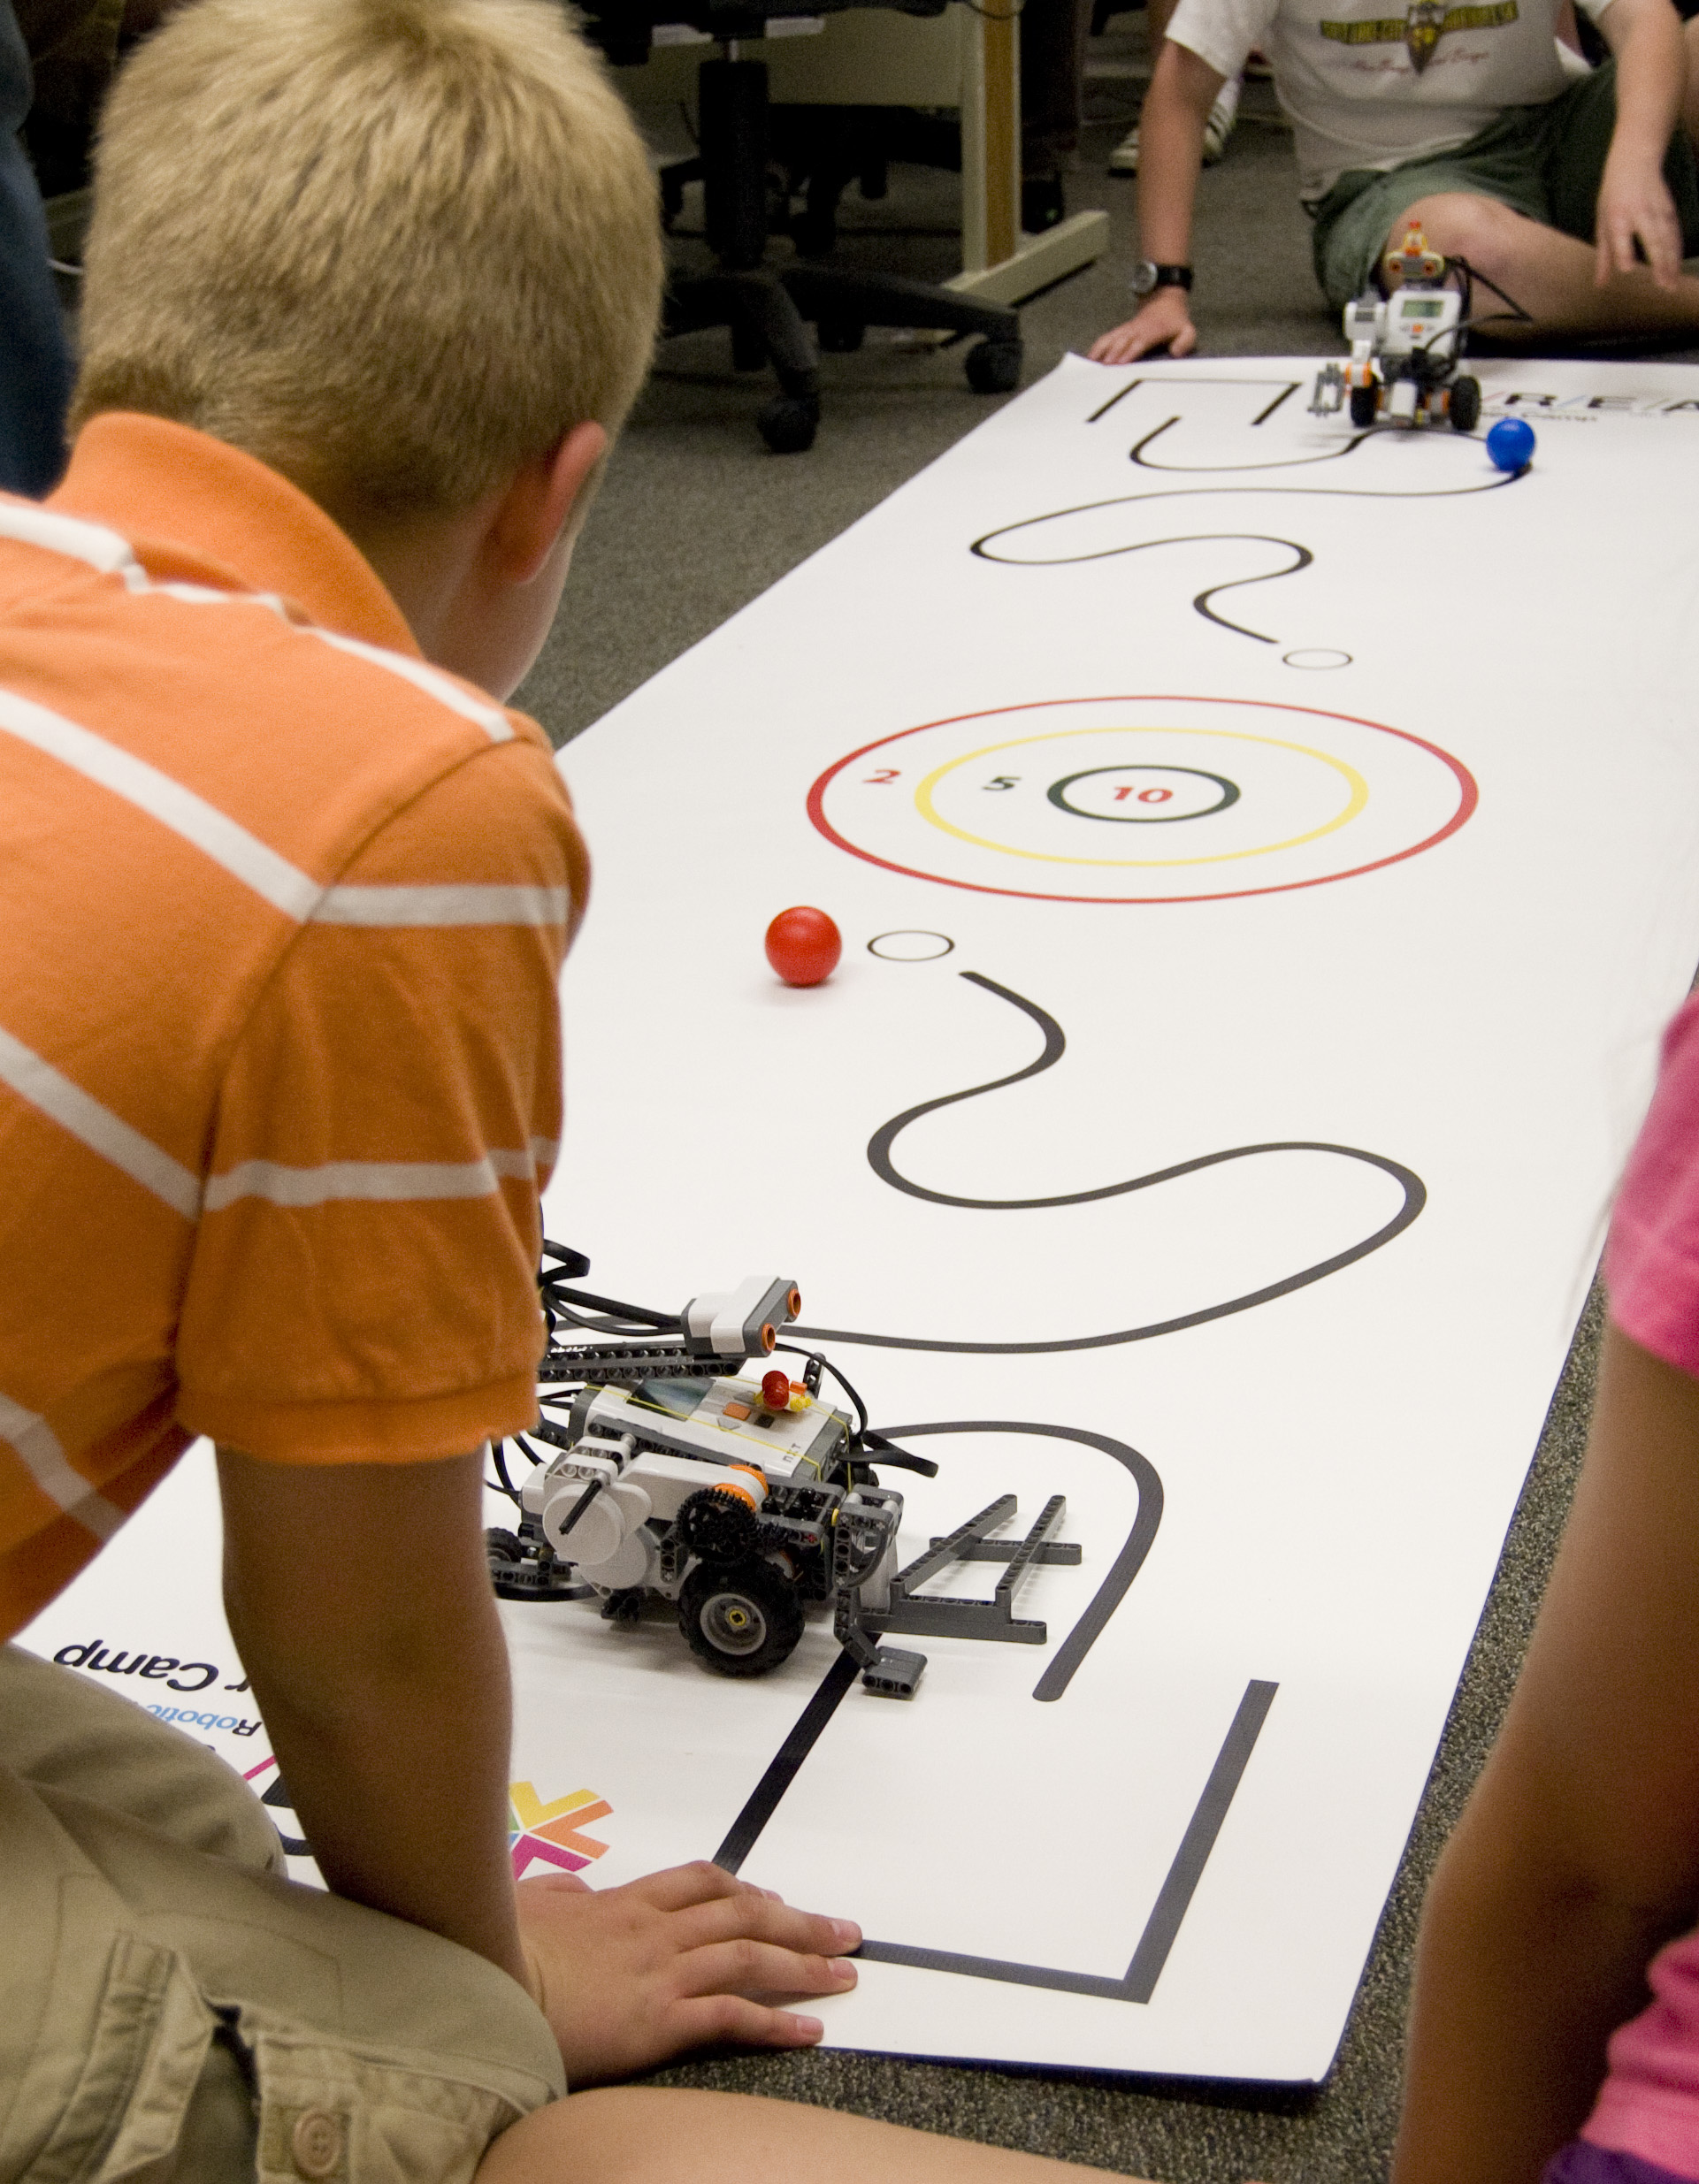 The University of Utah's School of Computing hosts camps every June and July where elementary, middle and high school students learn to program computers, build robots and create animation. Here, a student readies his robot for head-to-head competition in a First Lego League camp.